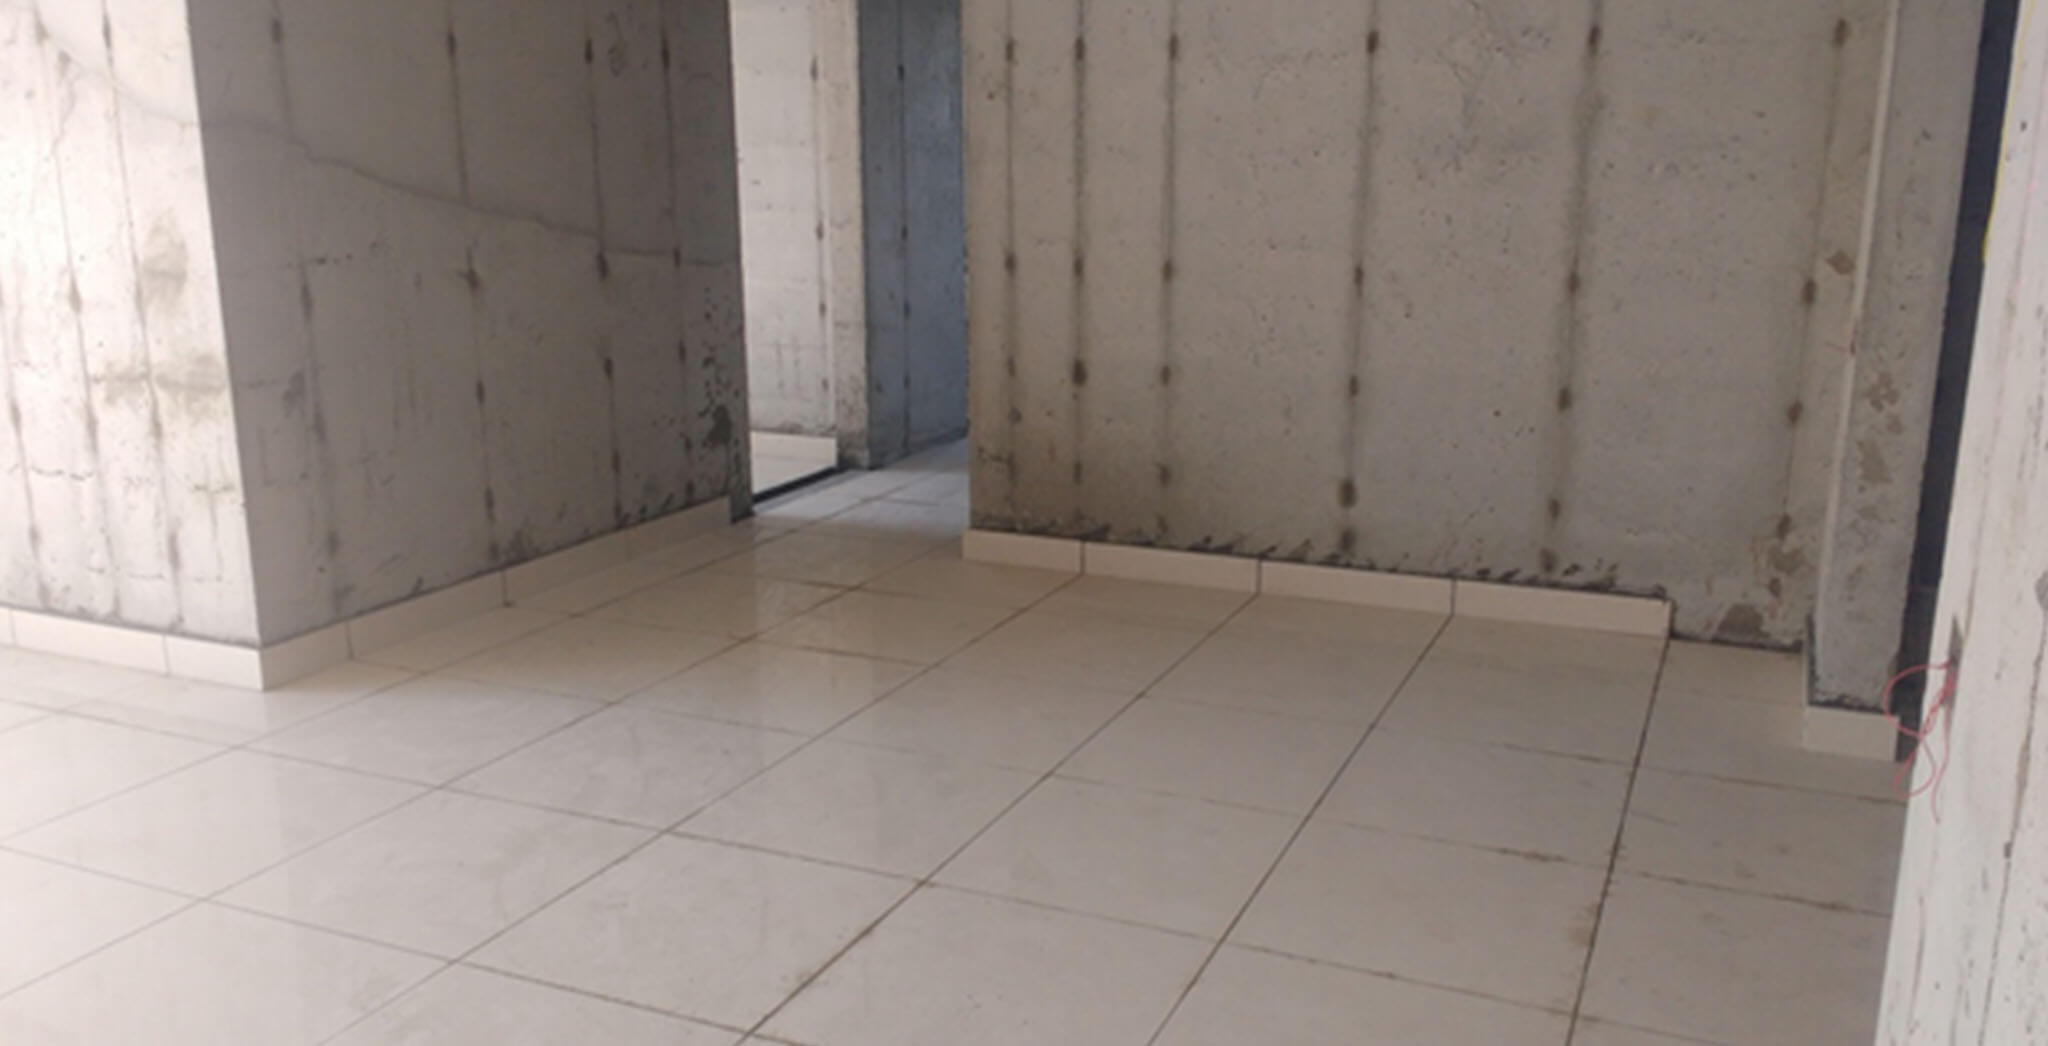 Oct 2019 - Tower B: Tiling work completed up to 6th floor level